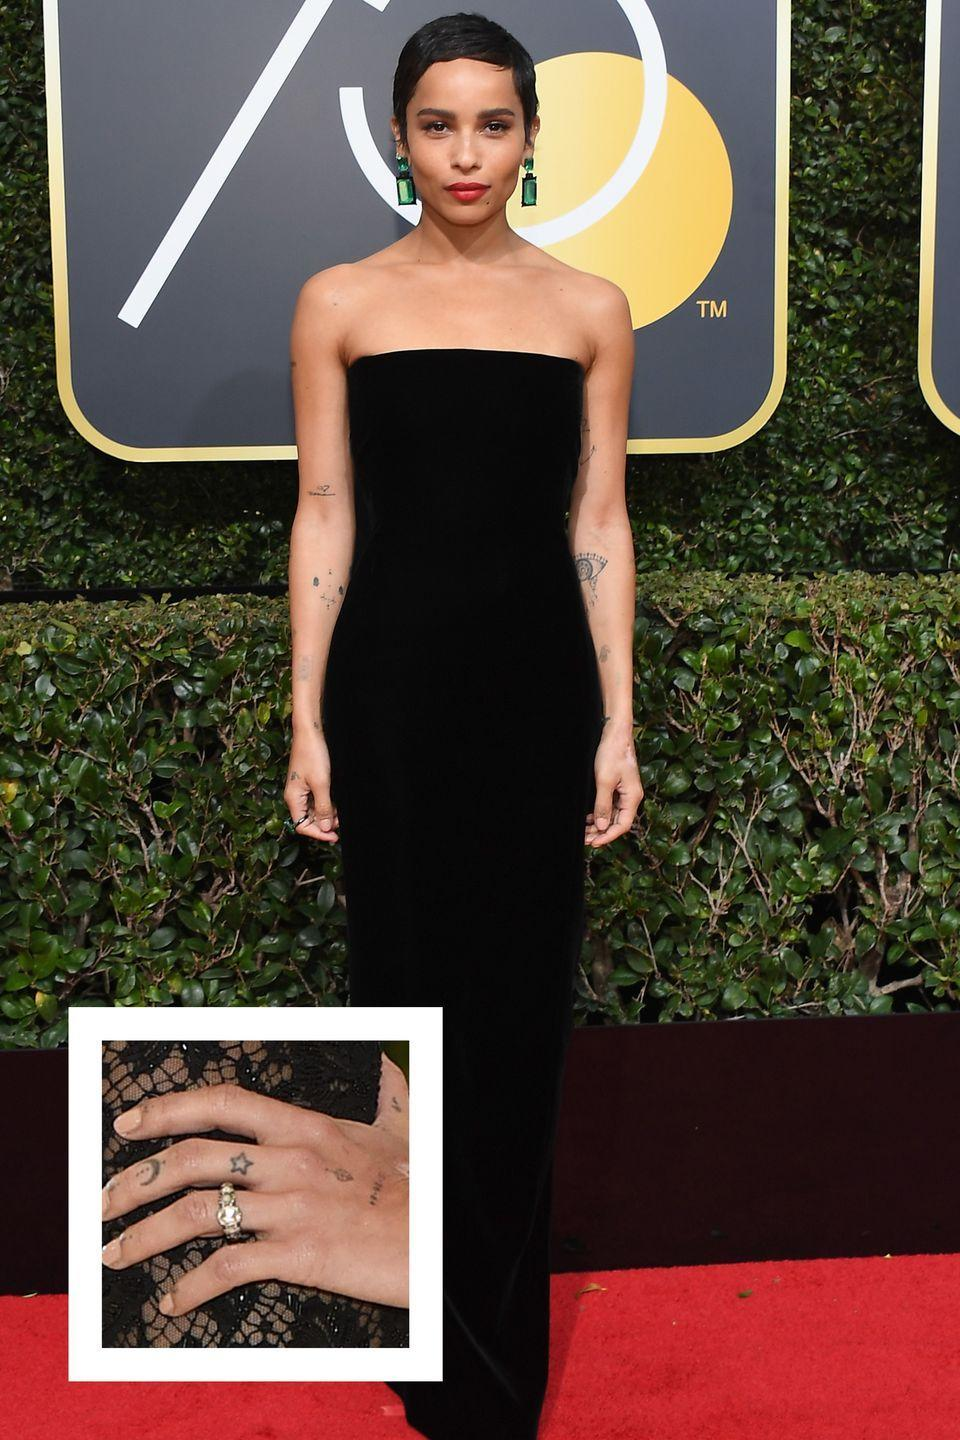 """<p>Zoë Kravitz confirmed her engagement to actor Karl Glusman <a href=""""https://www.rollingstone.com/movies/movie-features/zoe-kravitz-naked-cover-story-746684/"""" rel=""""nofollow noopener"""" target=""""_blank"""" data-ylk=""""slk:in an interview with"""" class=""""link rapid-noclick-resp"""">in an interview with</a> <em>Rolling Stone</em> in October 2018 after the pair officially got engaged in Paris in February 2018. The ring appears to be a round center stone surrounded by smaller accent stones. Kravitz told <em>Rolling Stone</em> that the ring was exactly what she had in mind. """"He nailed it,"""" <a href=""""https://www.rollingstone.com/movies/movie-features/zoe-kravitz-naked-cover-story-746684/"""" rel=""""nofollow noopener"""" target=""""_blank"""" data-ylk=""""slk:she said."""" class=""""link rapid-noclick-resp"""">she said.</a></p>"""